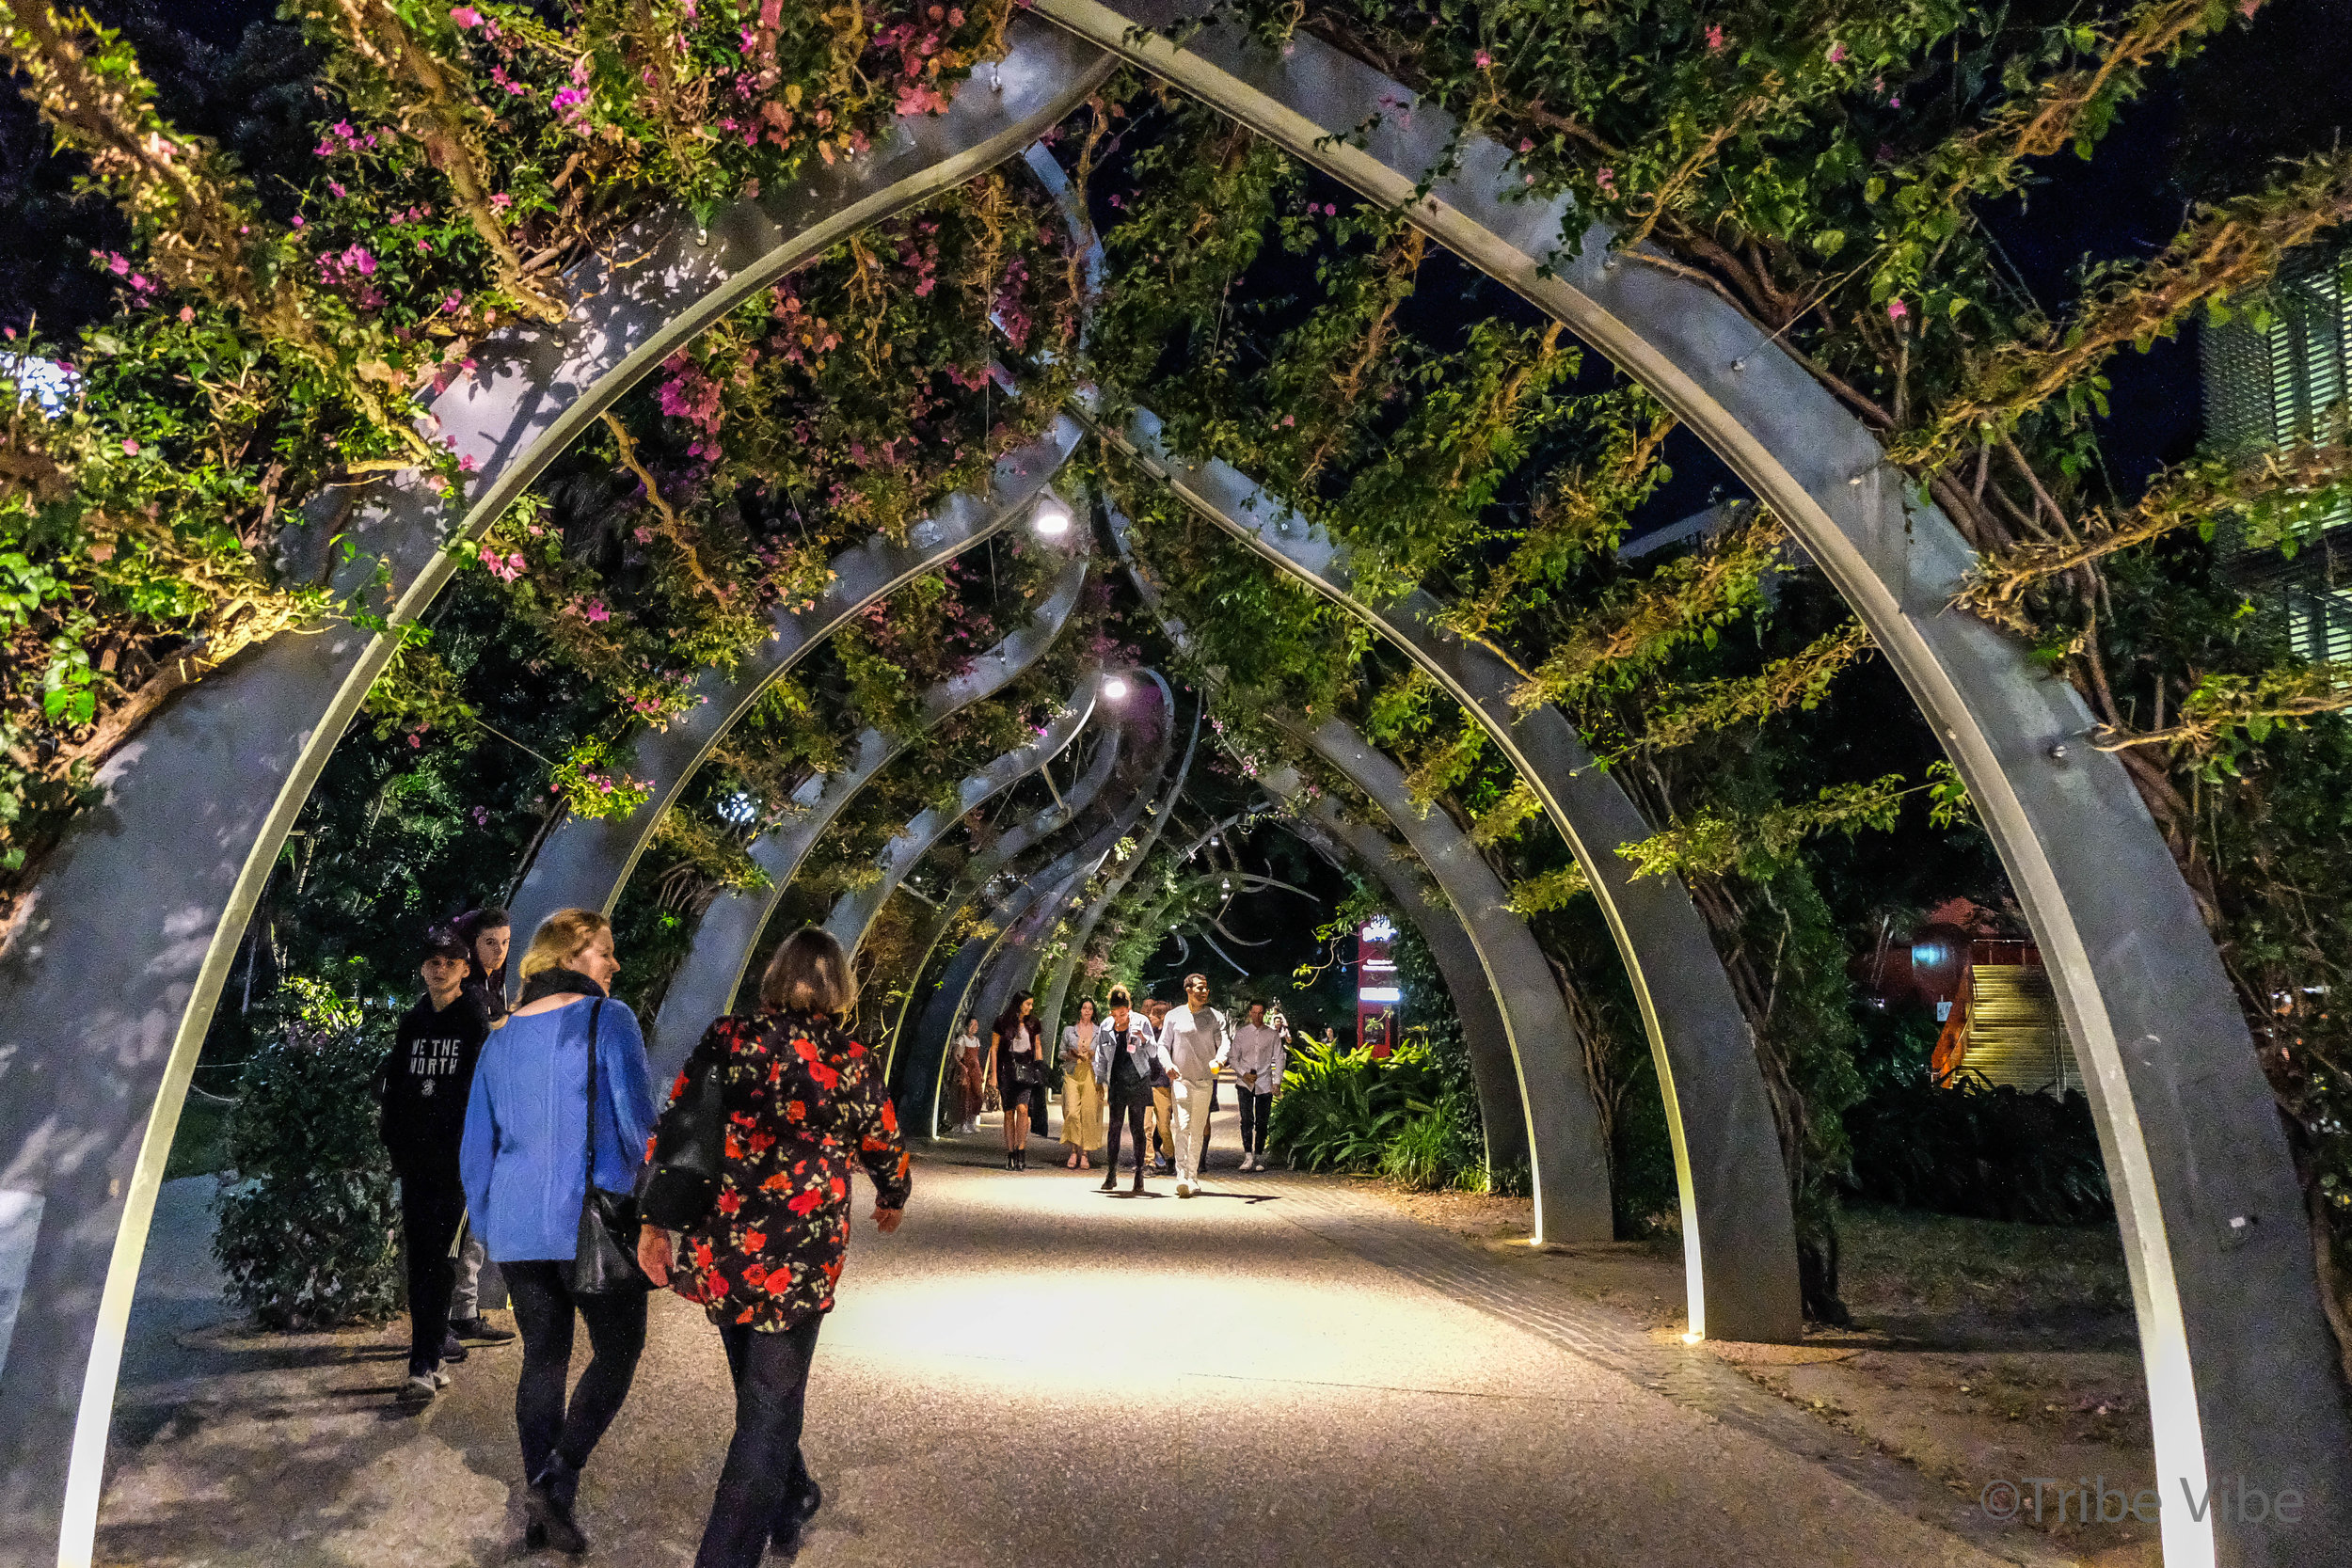 Walkway at South Bank in Brisbane, Australia.